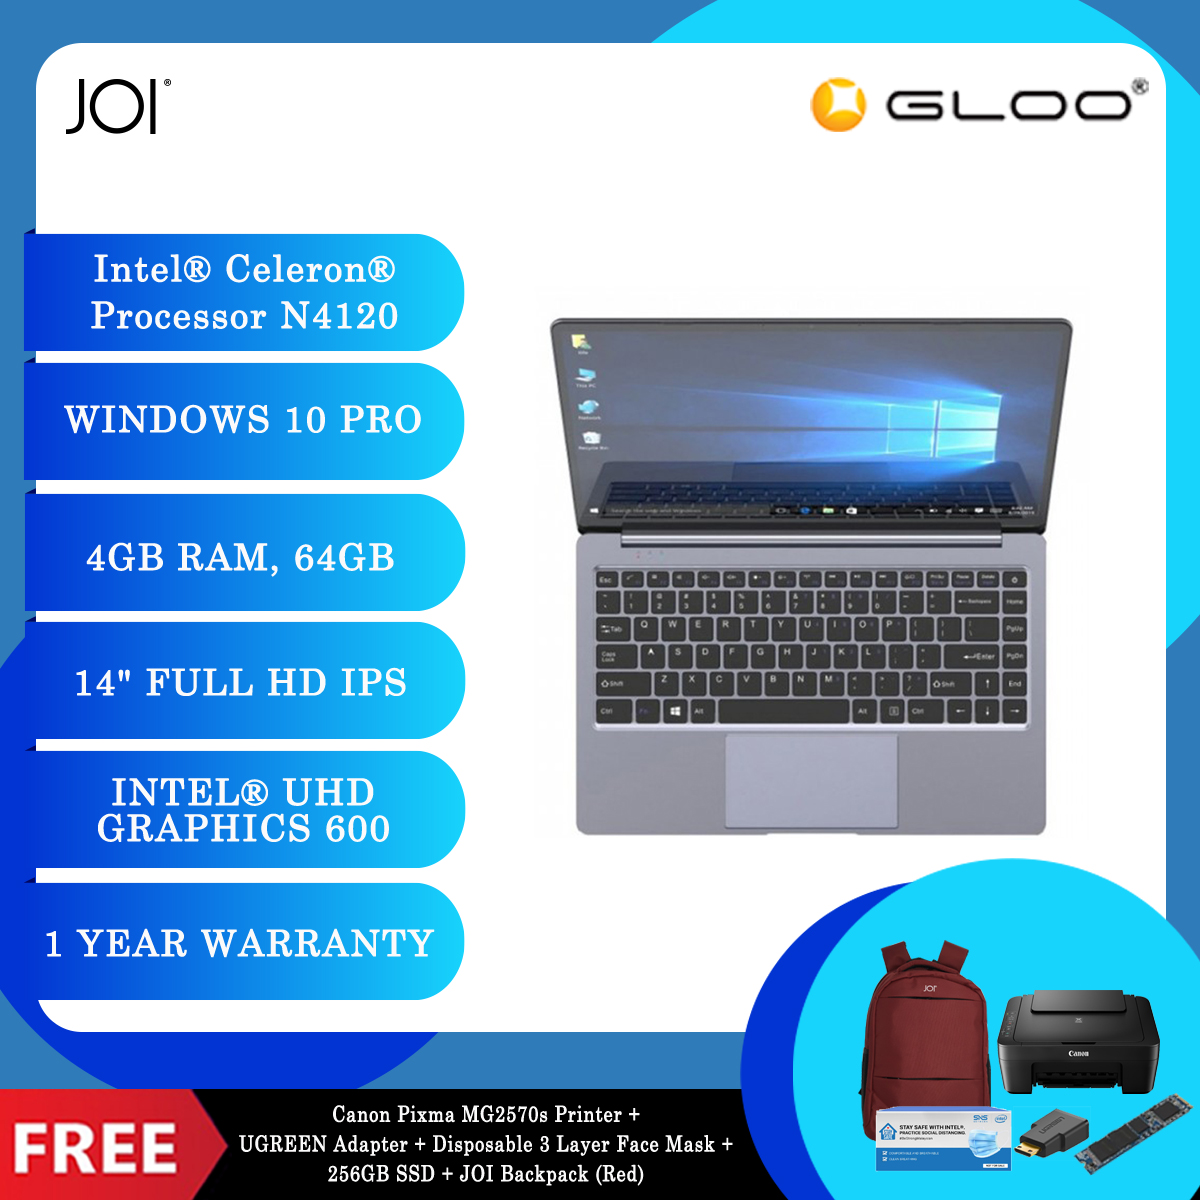 """JOI Book 155 Pro (N4120,4GB+64GB,14"""" FHD,W10Pro) + Canon Pixma MG2570s Printer + UGREEN Mini HDMI Male To HDMI Female Adapter - 20101 + Disposable 3 Layer Face Mask 1 Box/50pcs + 256GB SSD + JOI Backpack (Red) [BPPJOI0155PRRD]"""